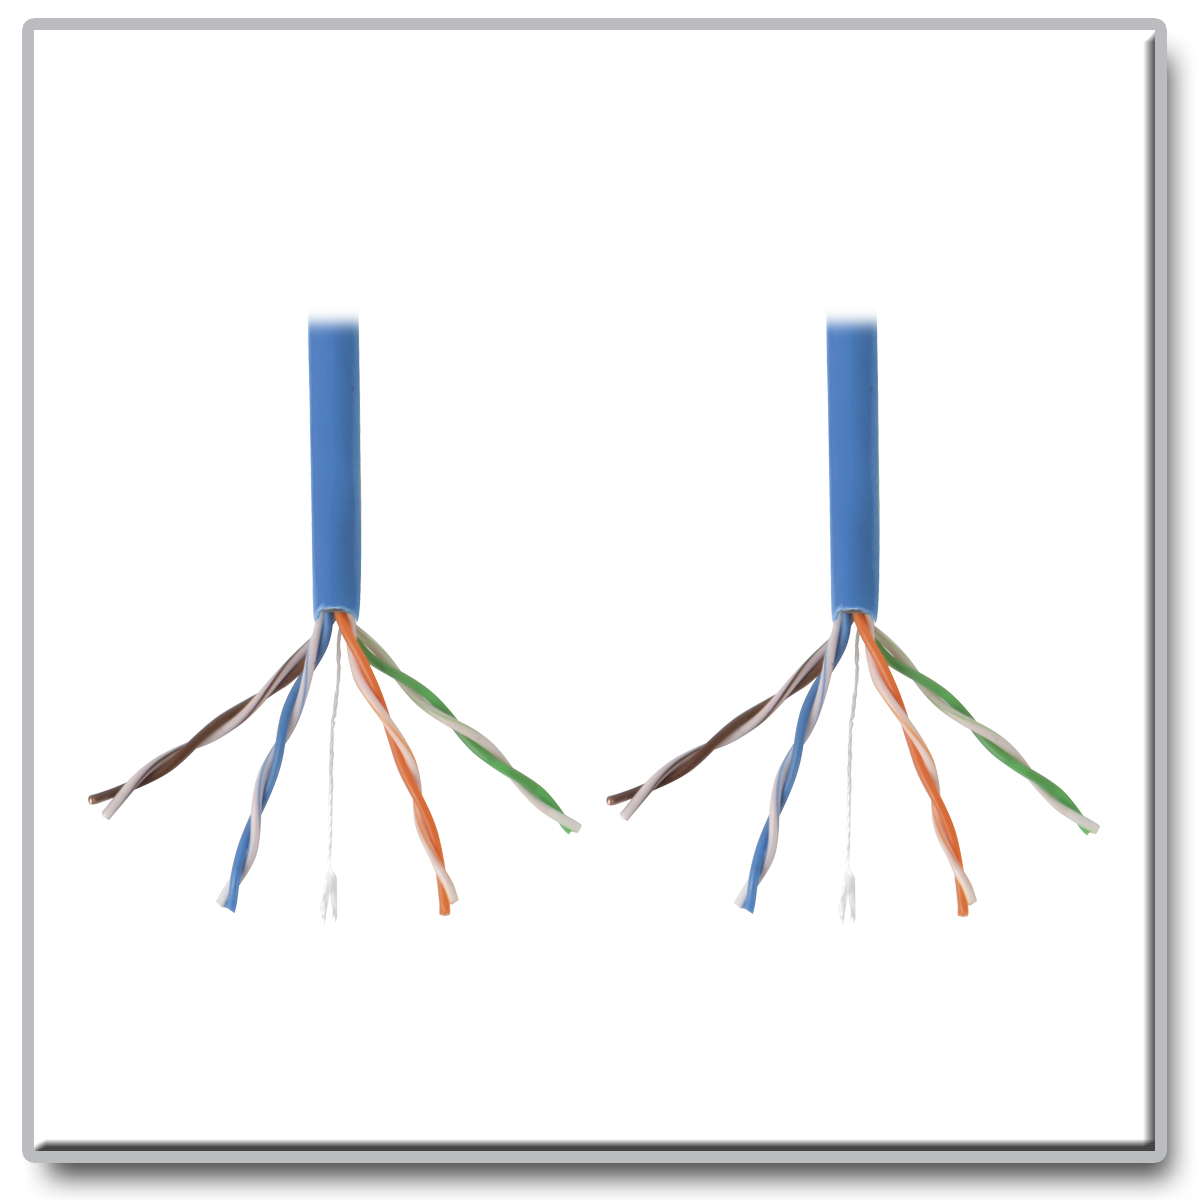 Tripp Lite 1000ft Cat5 Cat5e Bulk Cable Solid Cmr Pvc 350mhz Blue Surge Protective Device Wiring Diagram Electrial Provides Fast Transmission And Outstanding Signal Quality In Your Local Area Network